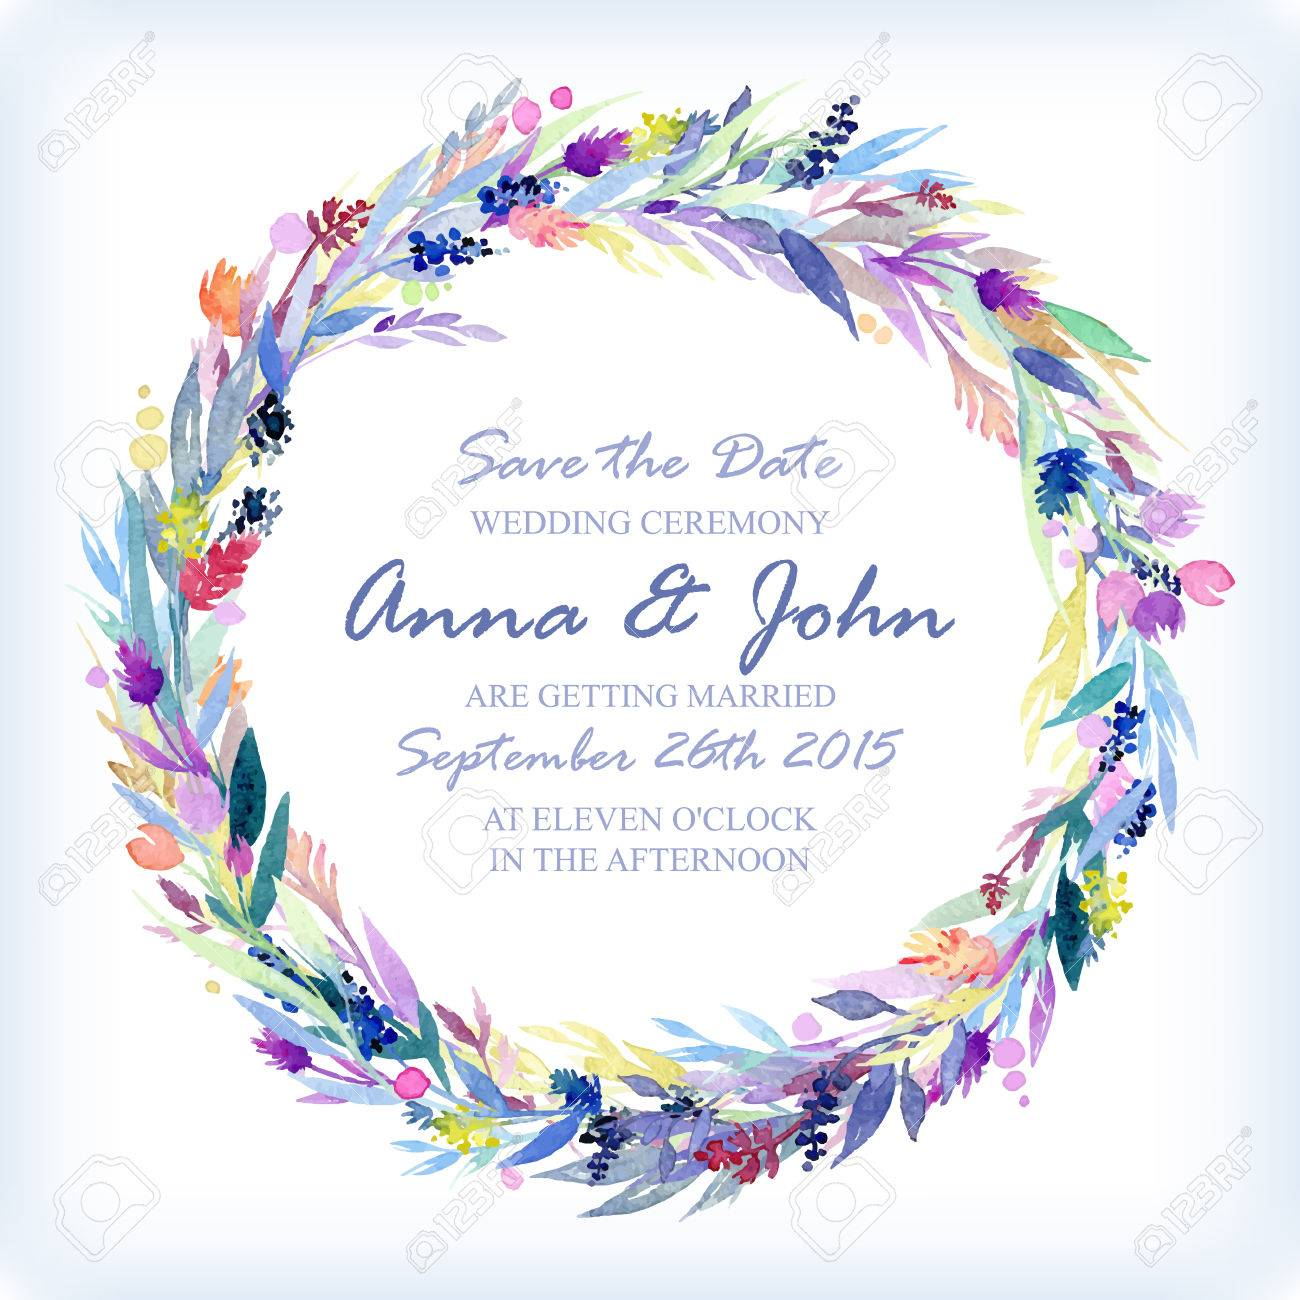 vector wedding invitation design template with watercolor floral circular frame vector background for special occasions life events save the date